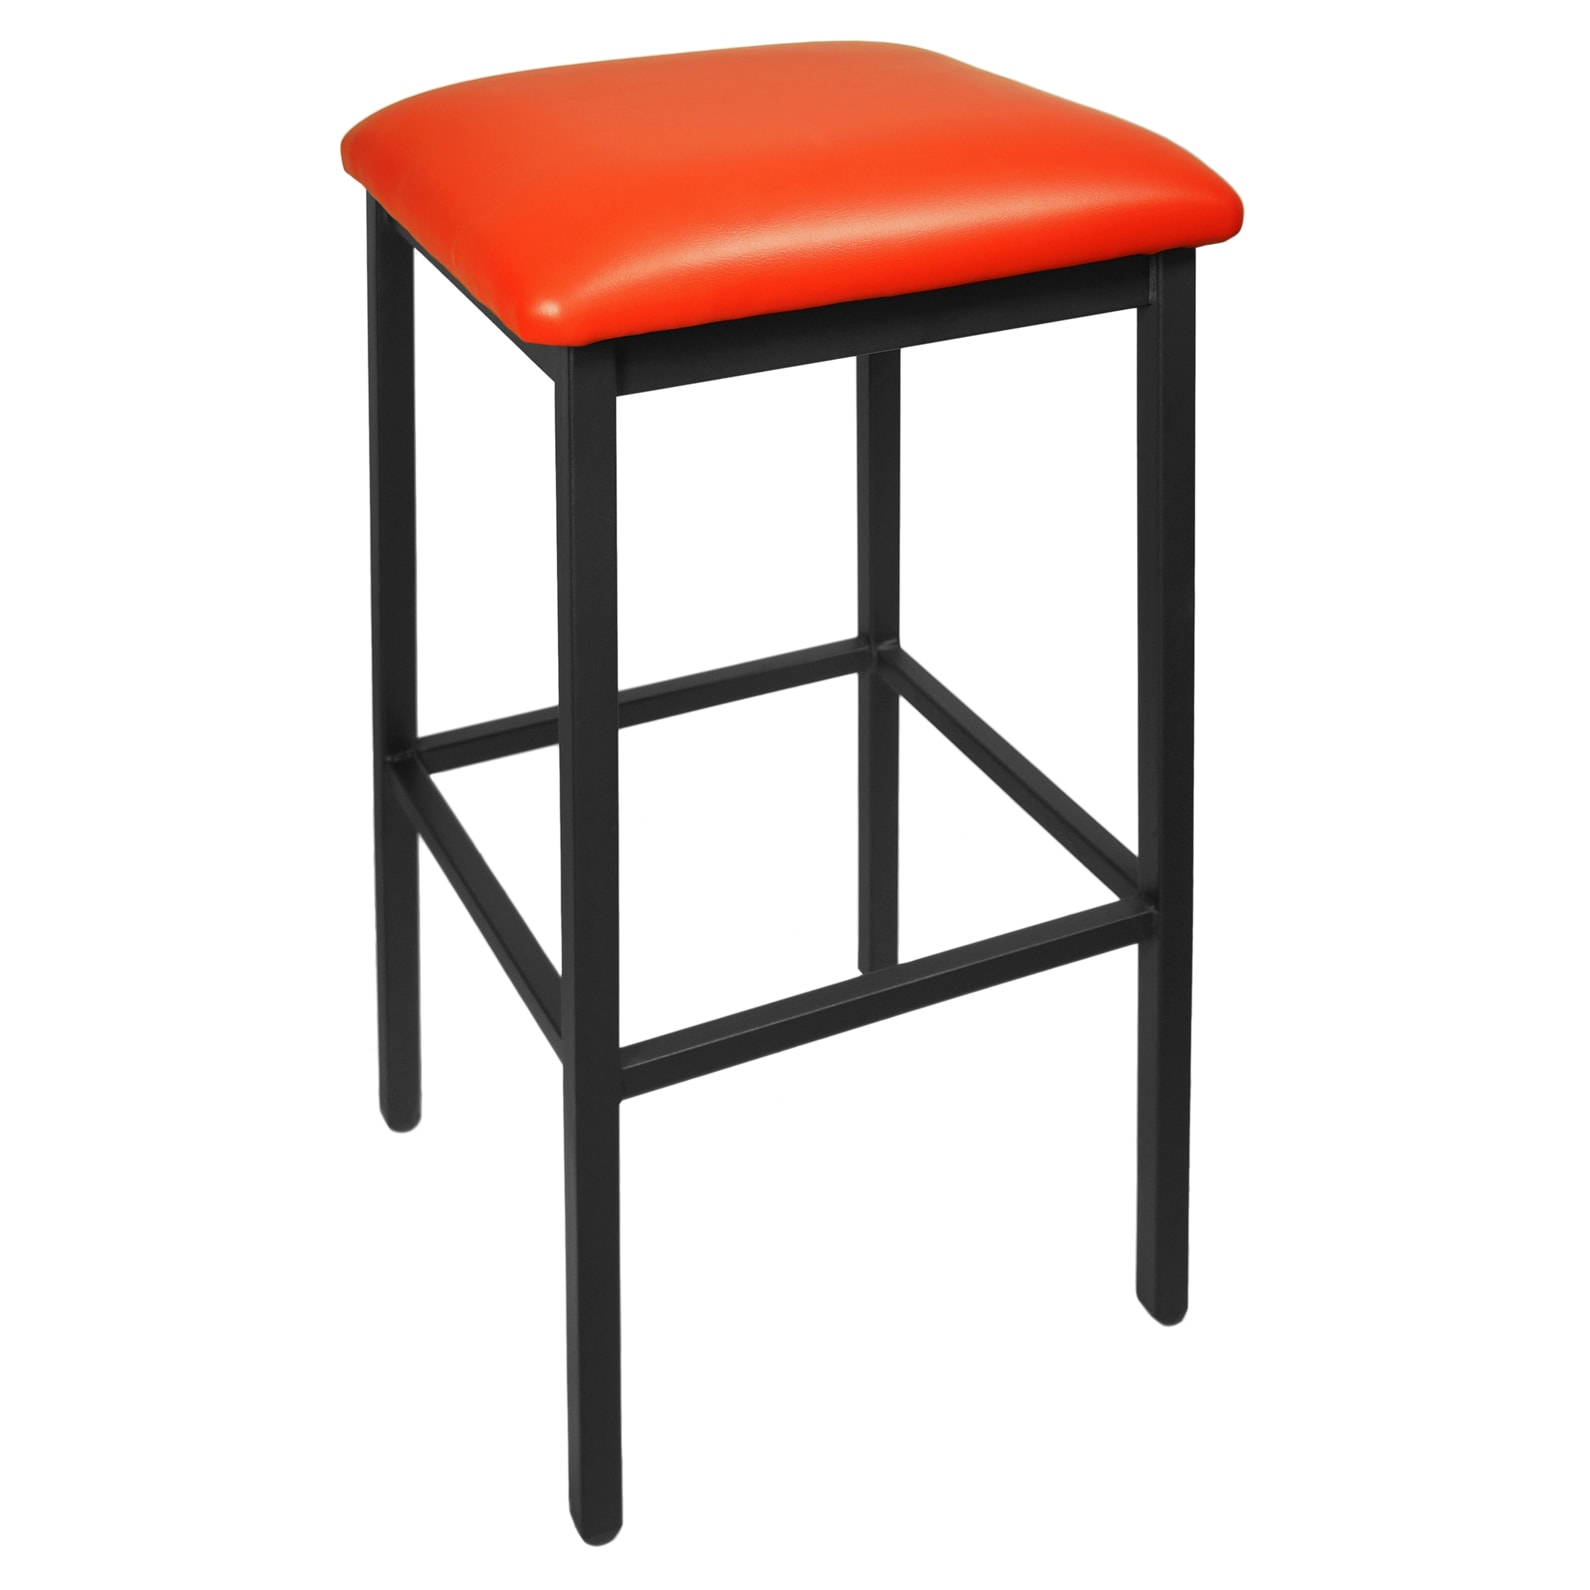 Kollet Backless Bar Stool in Black Finish